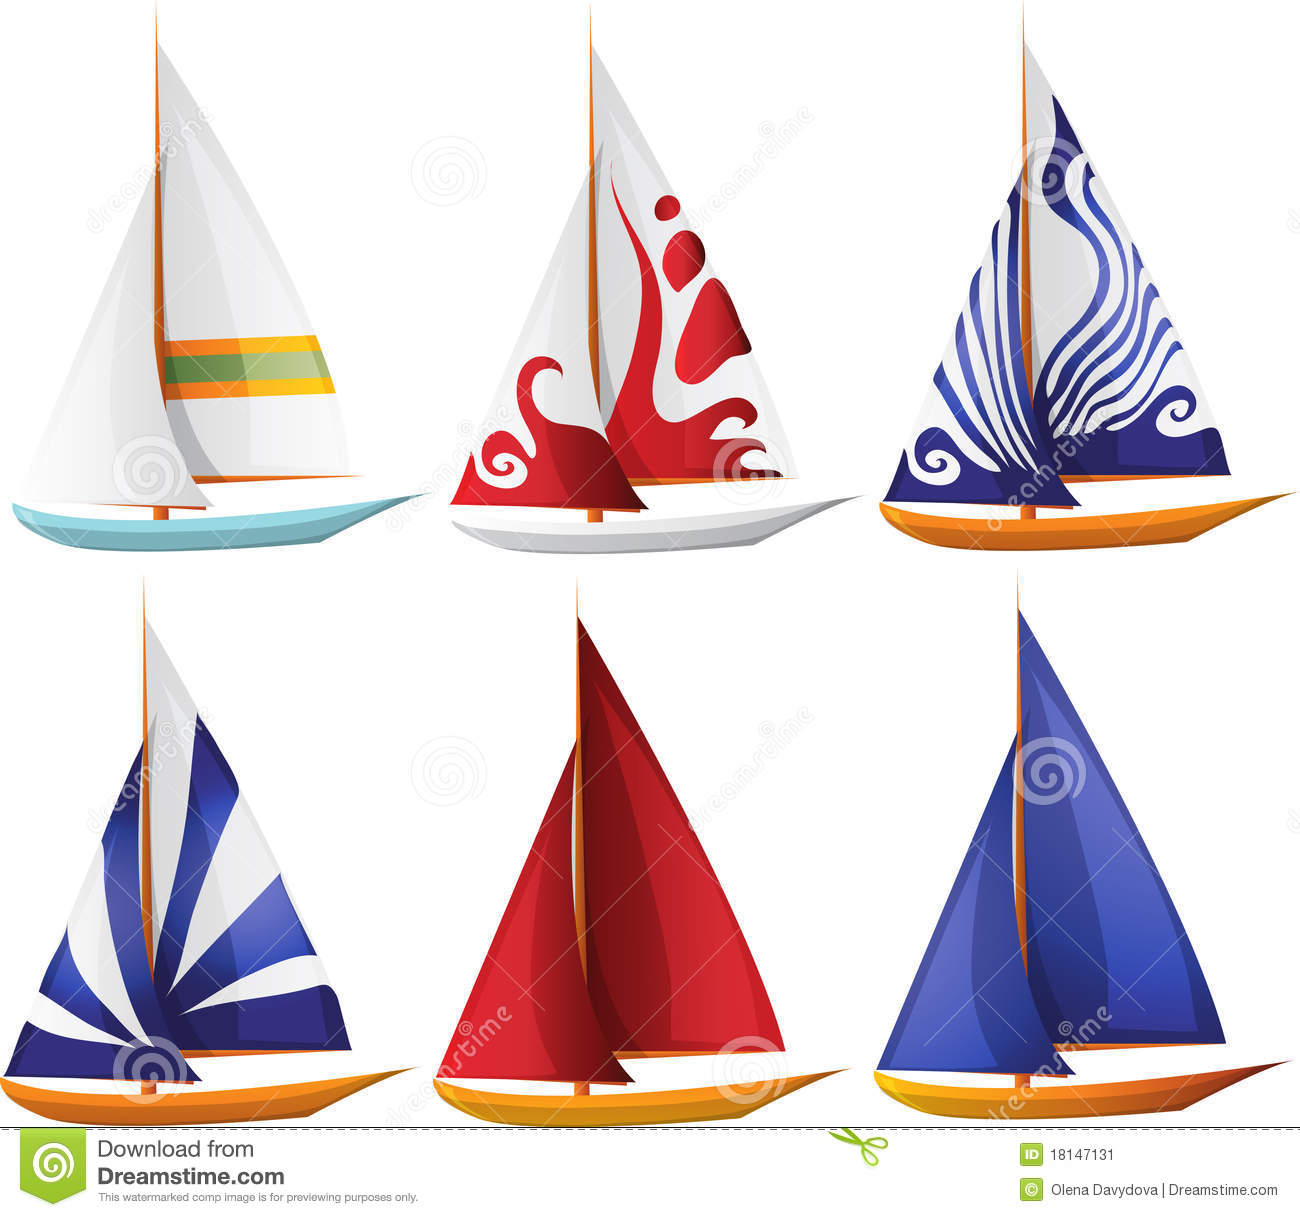 hight resolution of 1300x1217 yacht clipart small boat